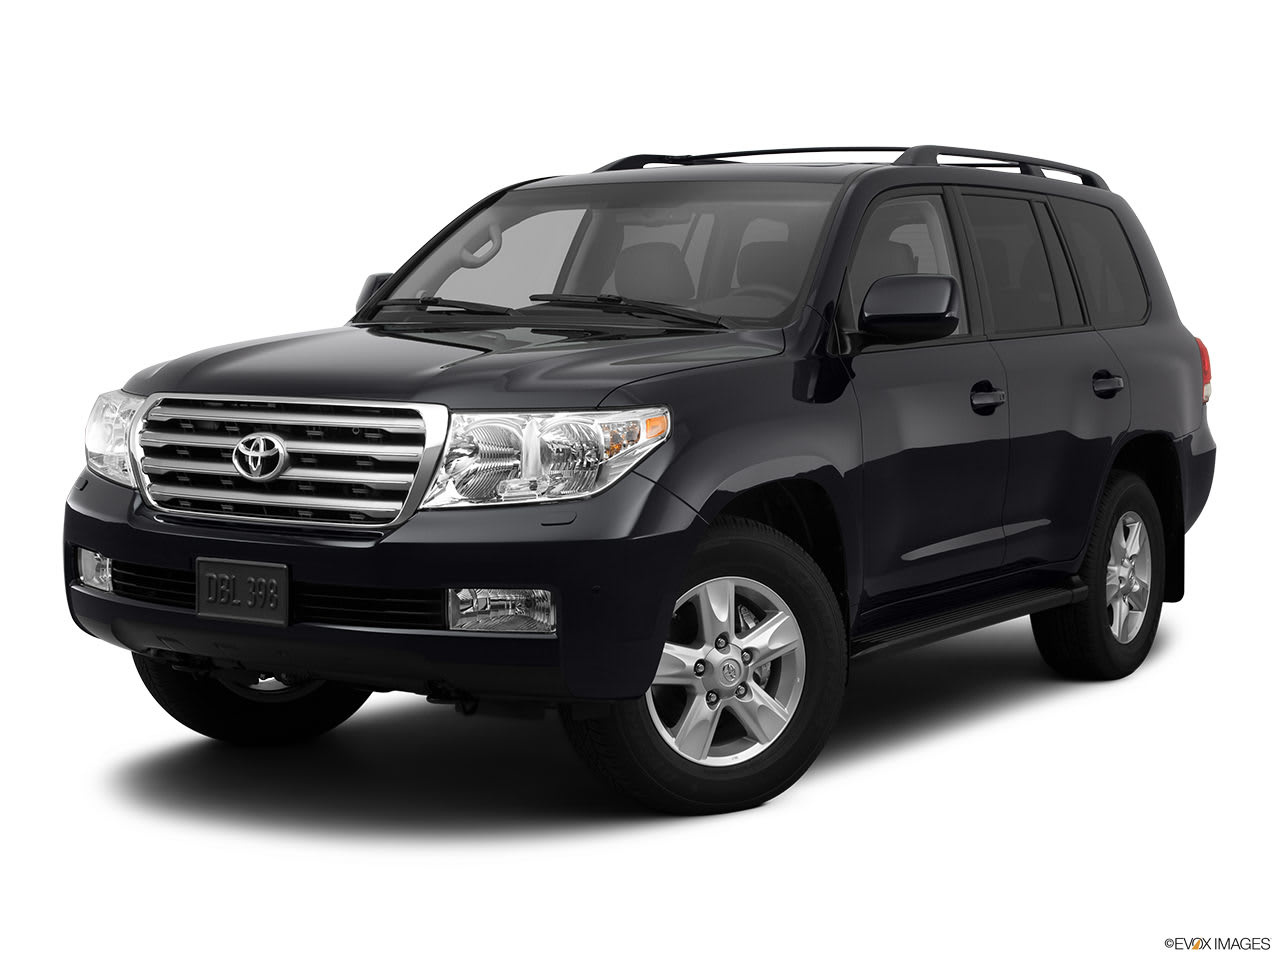 A Buyer's Guide to the 2011 Toyota Land Cruiser